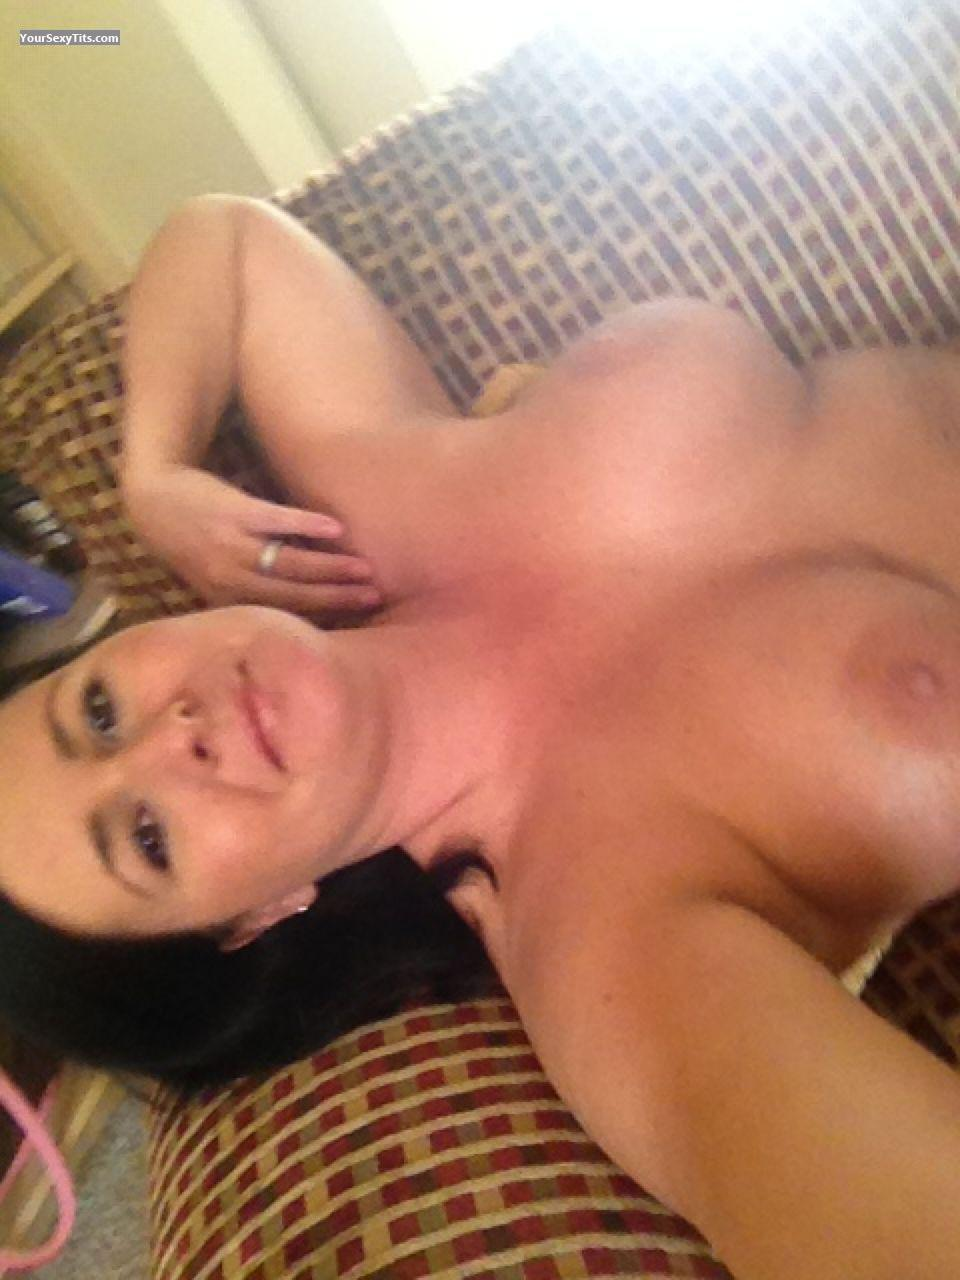 My Very big Tits Topless Selfie by Beck